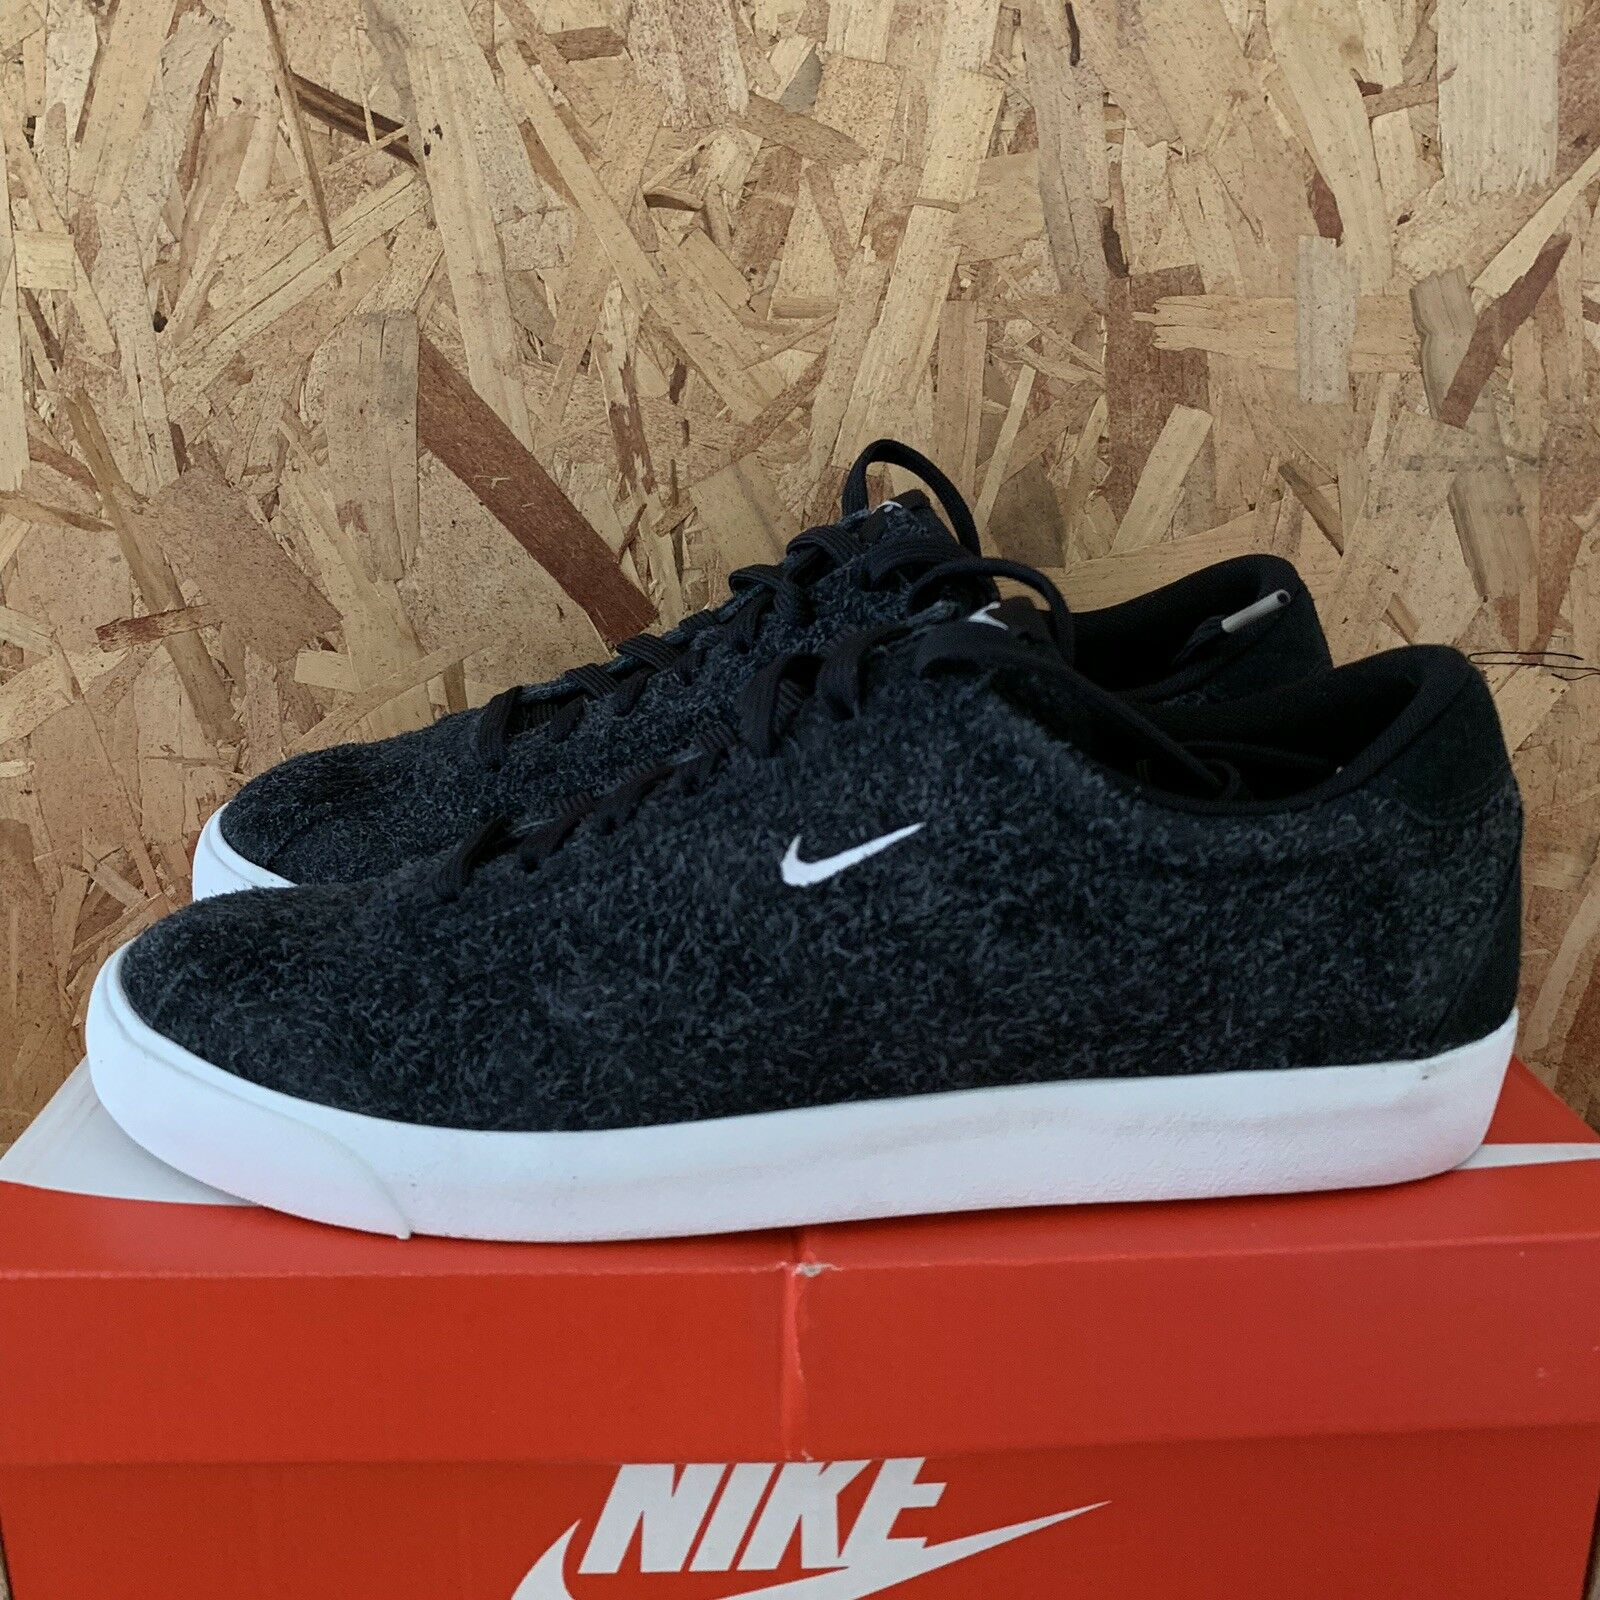 Nike Match Classic Suede - Black   Summit White Size 11.5 New